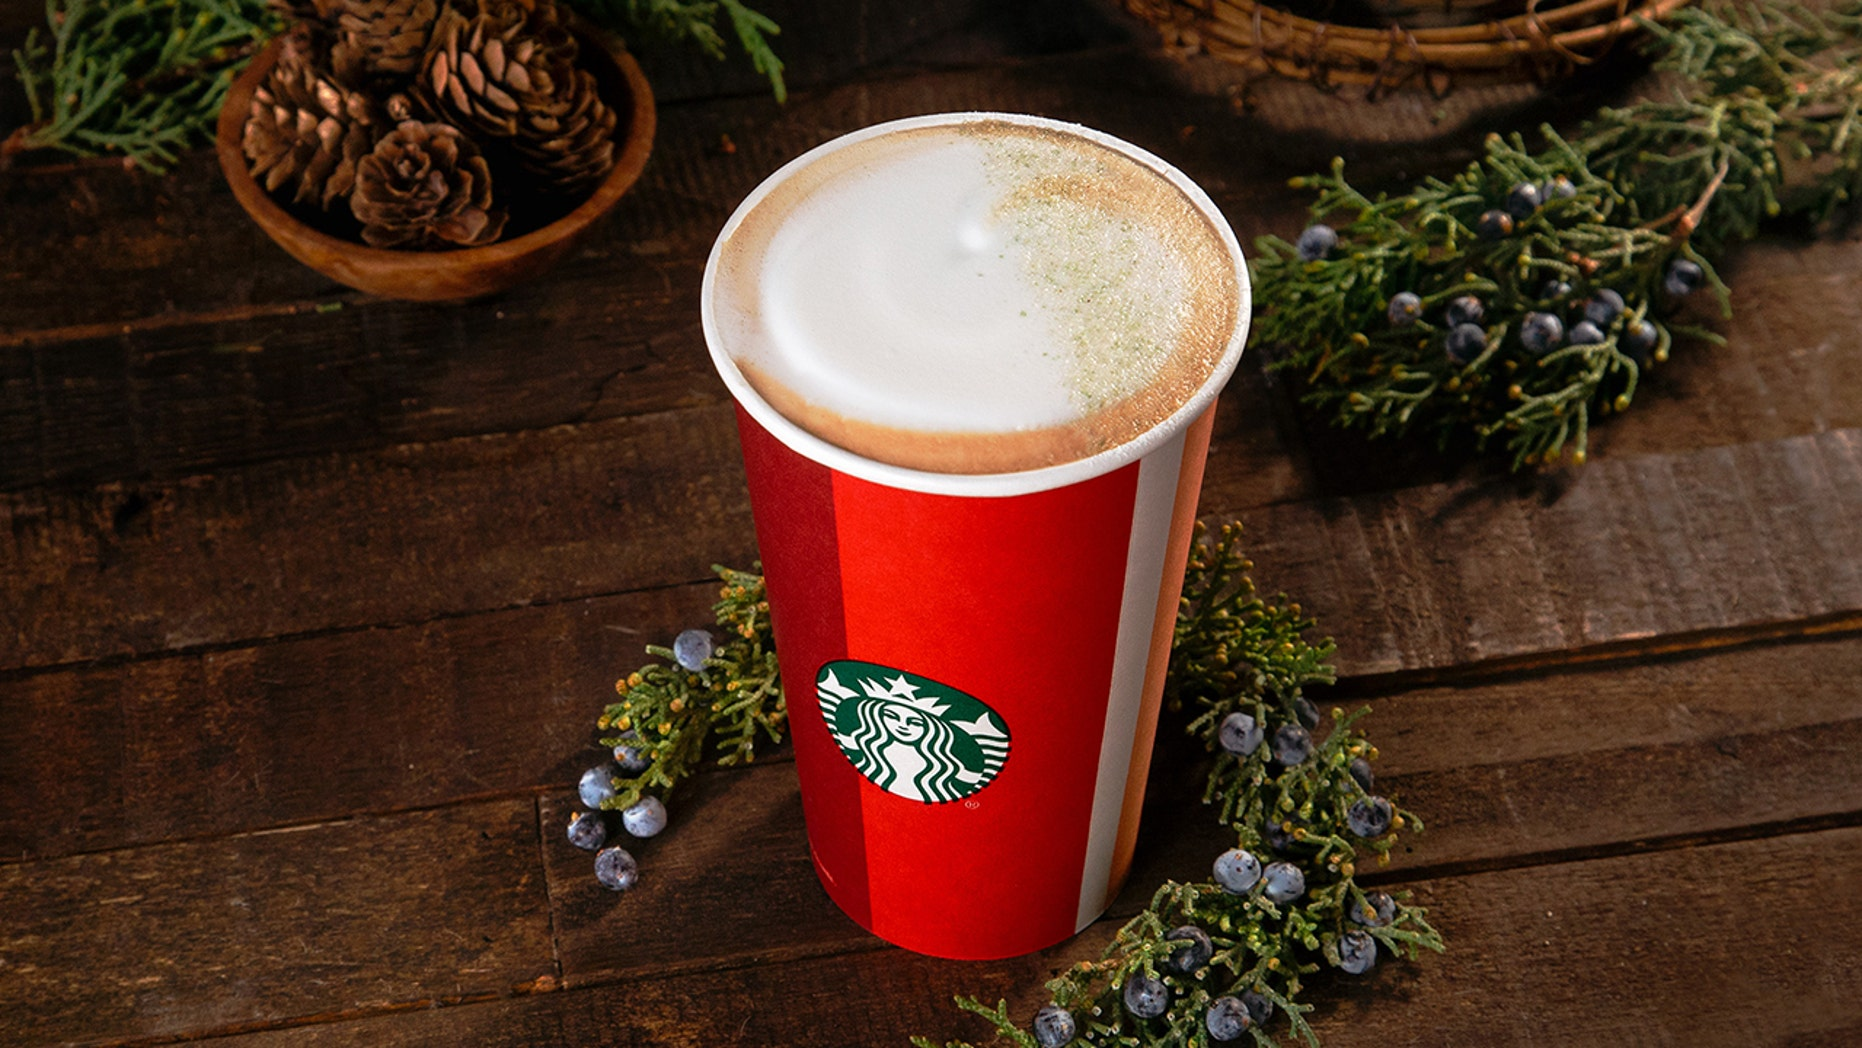 Starbucks' latest holiday beverage is drawing mixed reviews.